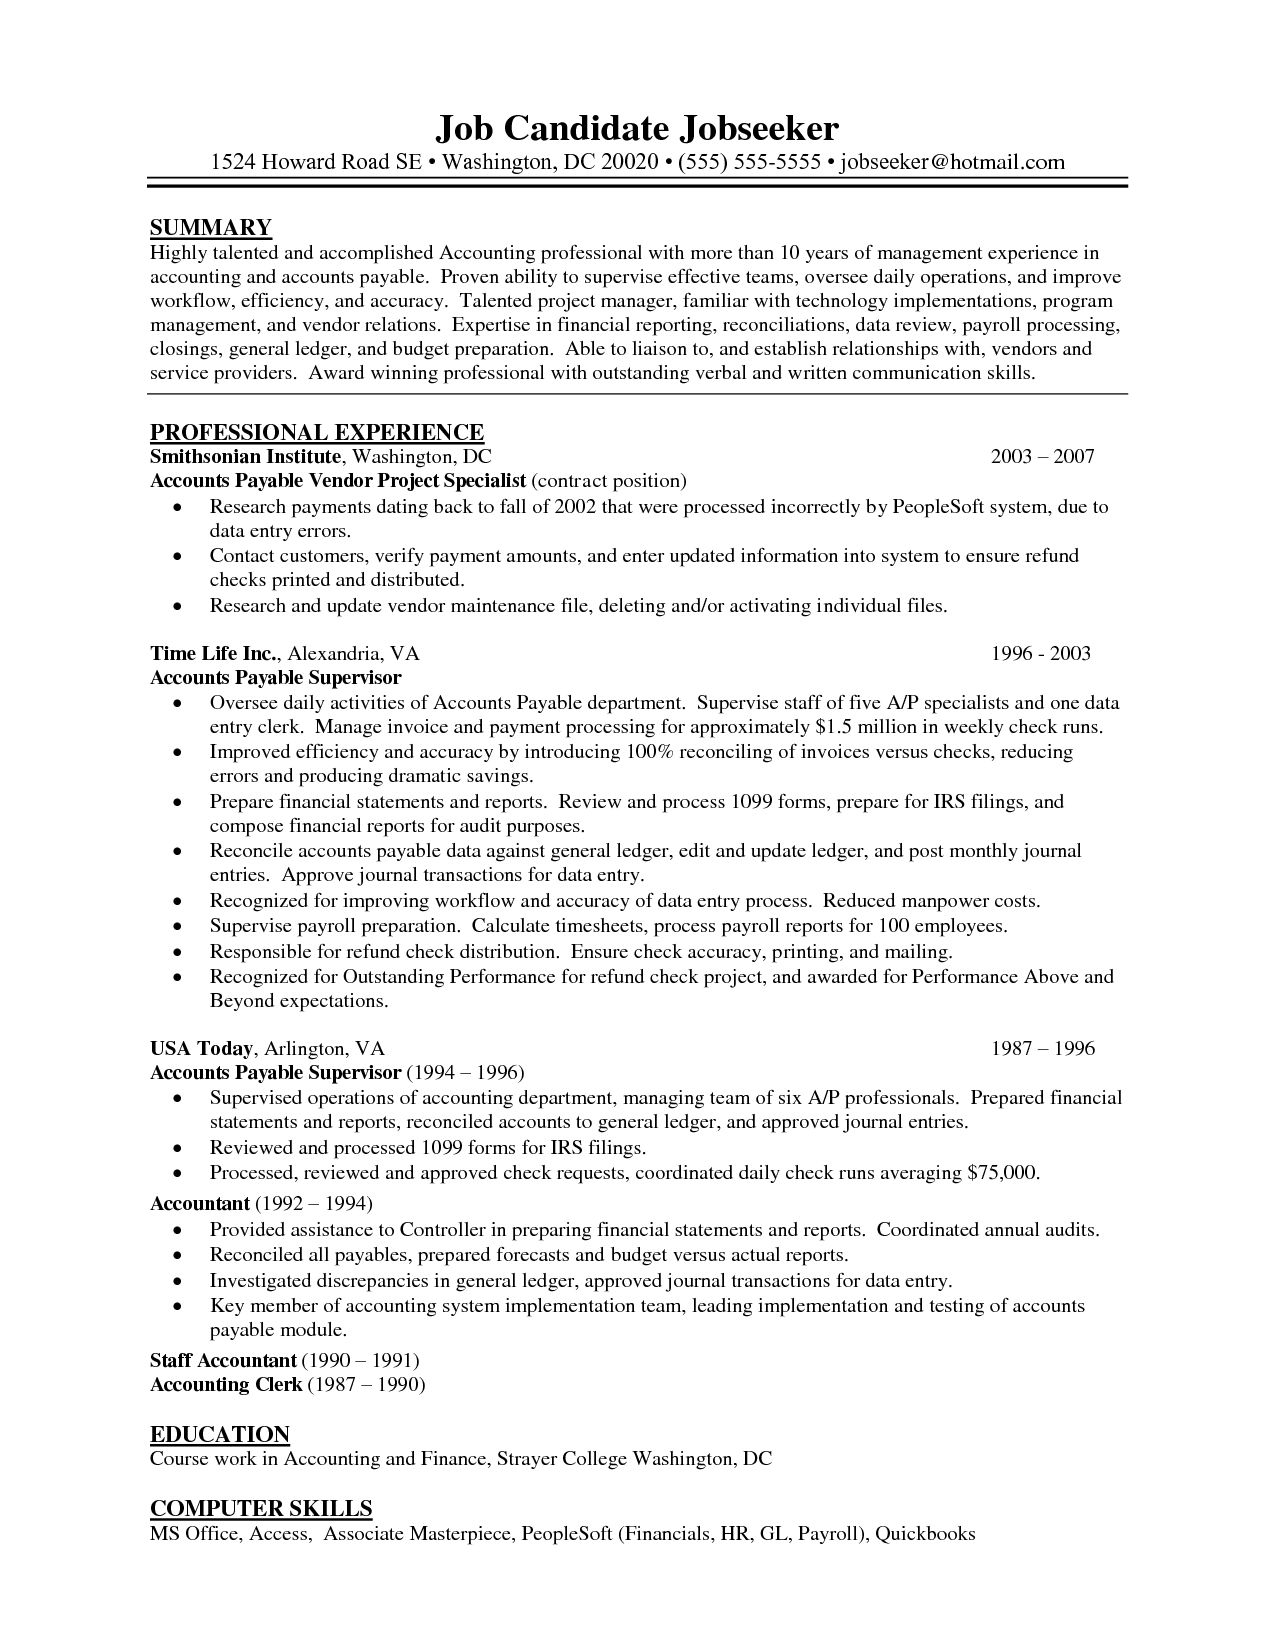 Accounts Payable And Receivable Resume Awesome Resume Examples Accounts Payable  Pinterest  Resume Examples